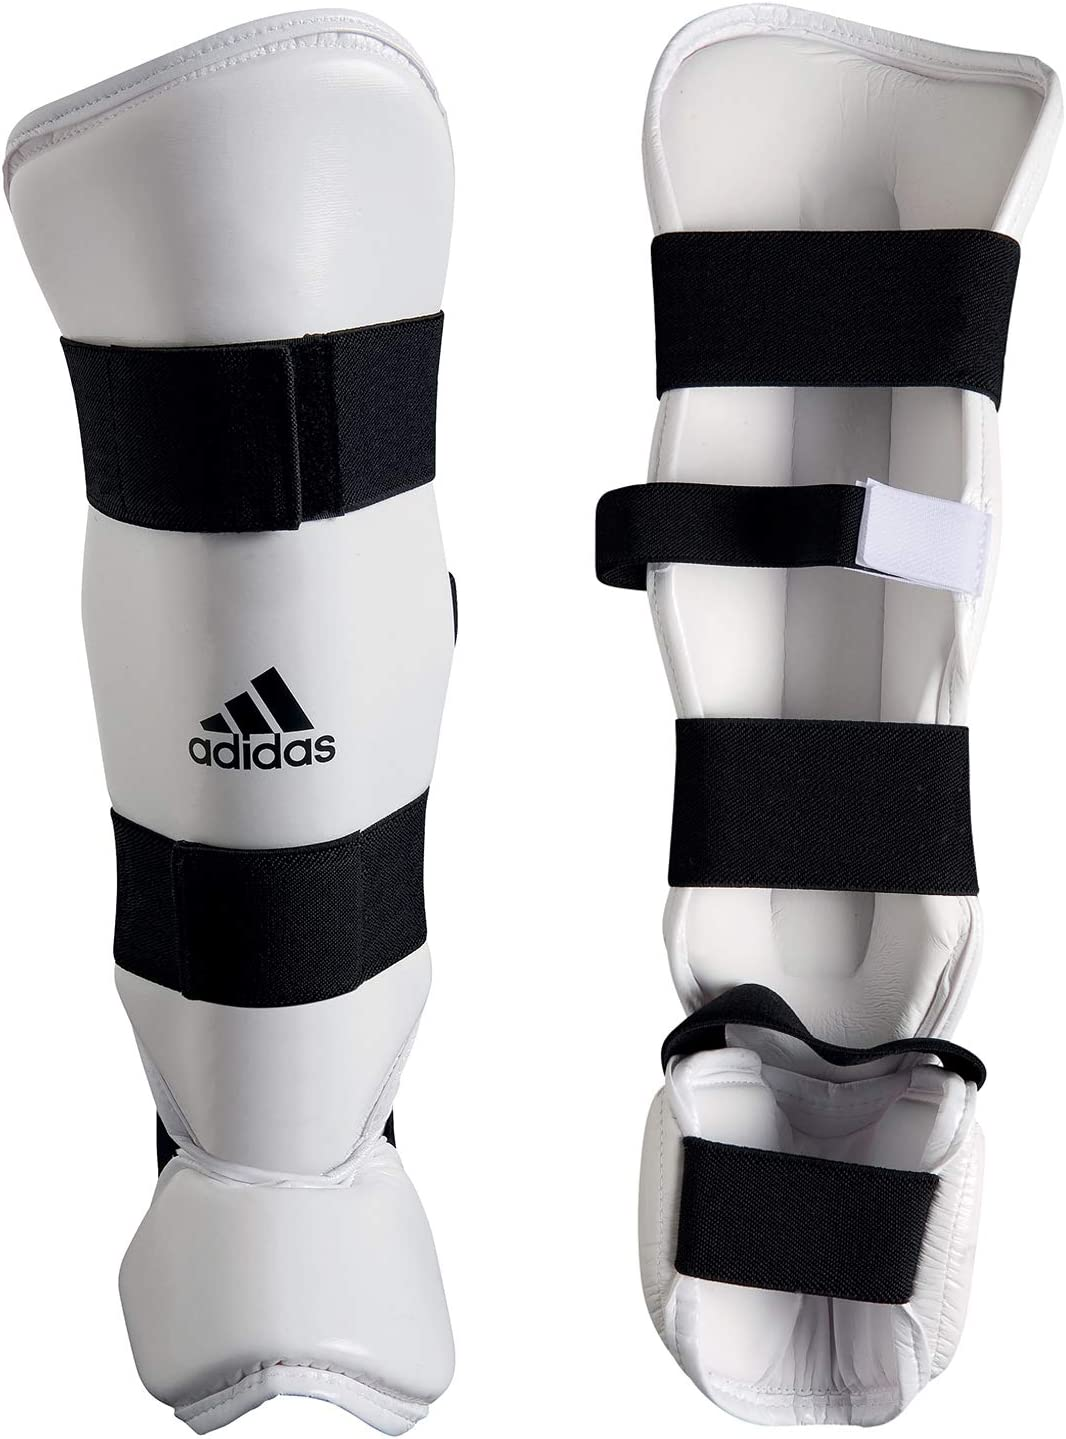 Adidas Shin Instep excellence Protector Discount is also underway